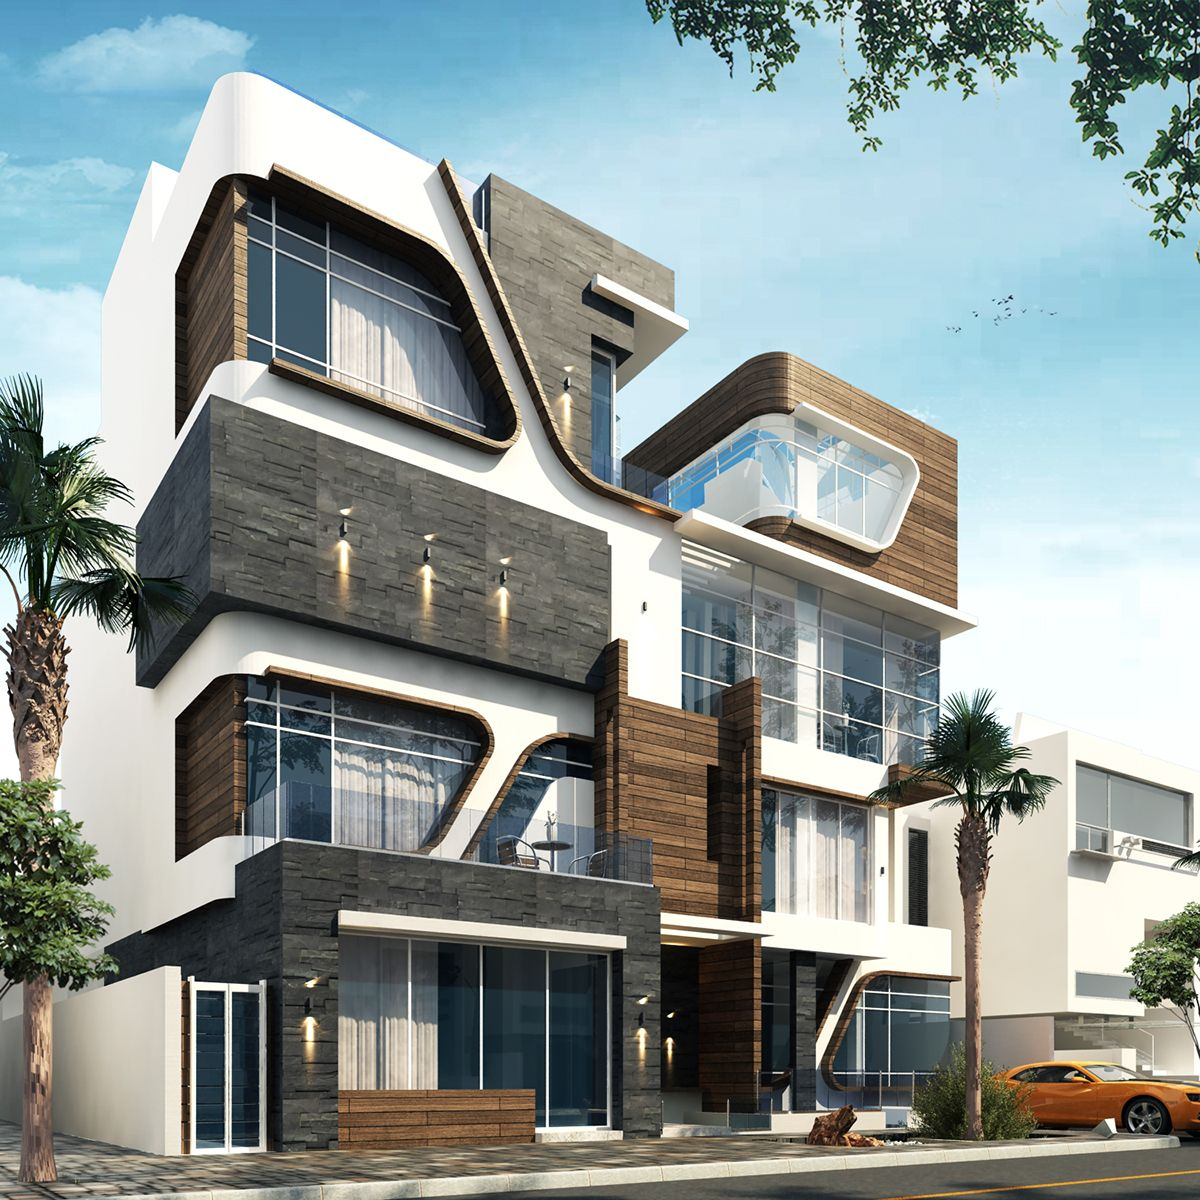 Villa By Mo'men Gamal. Software: Vray, Autodesk 3ds Max